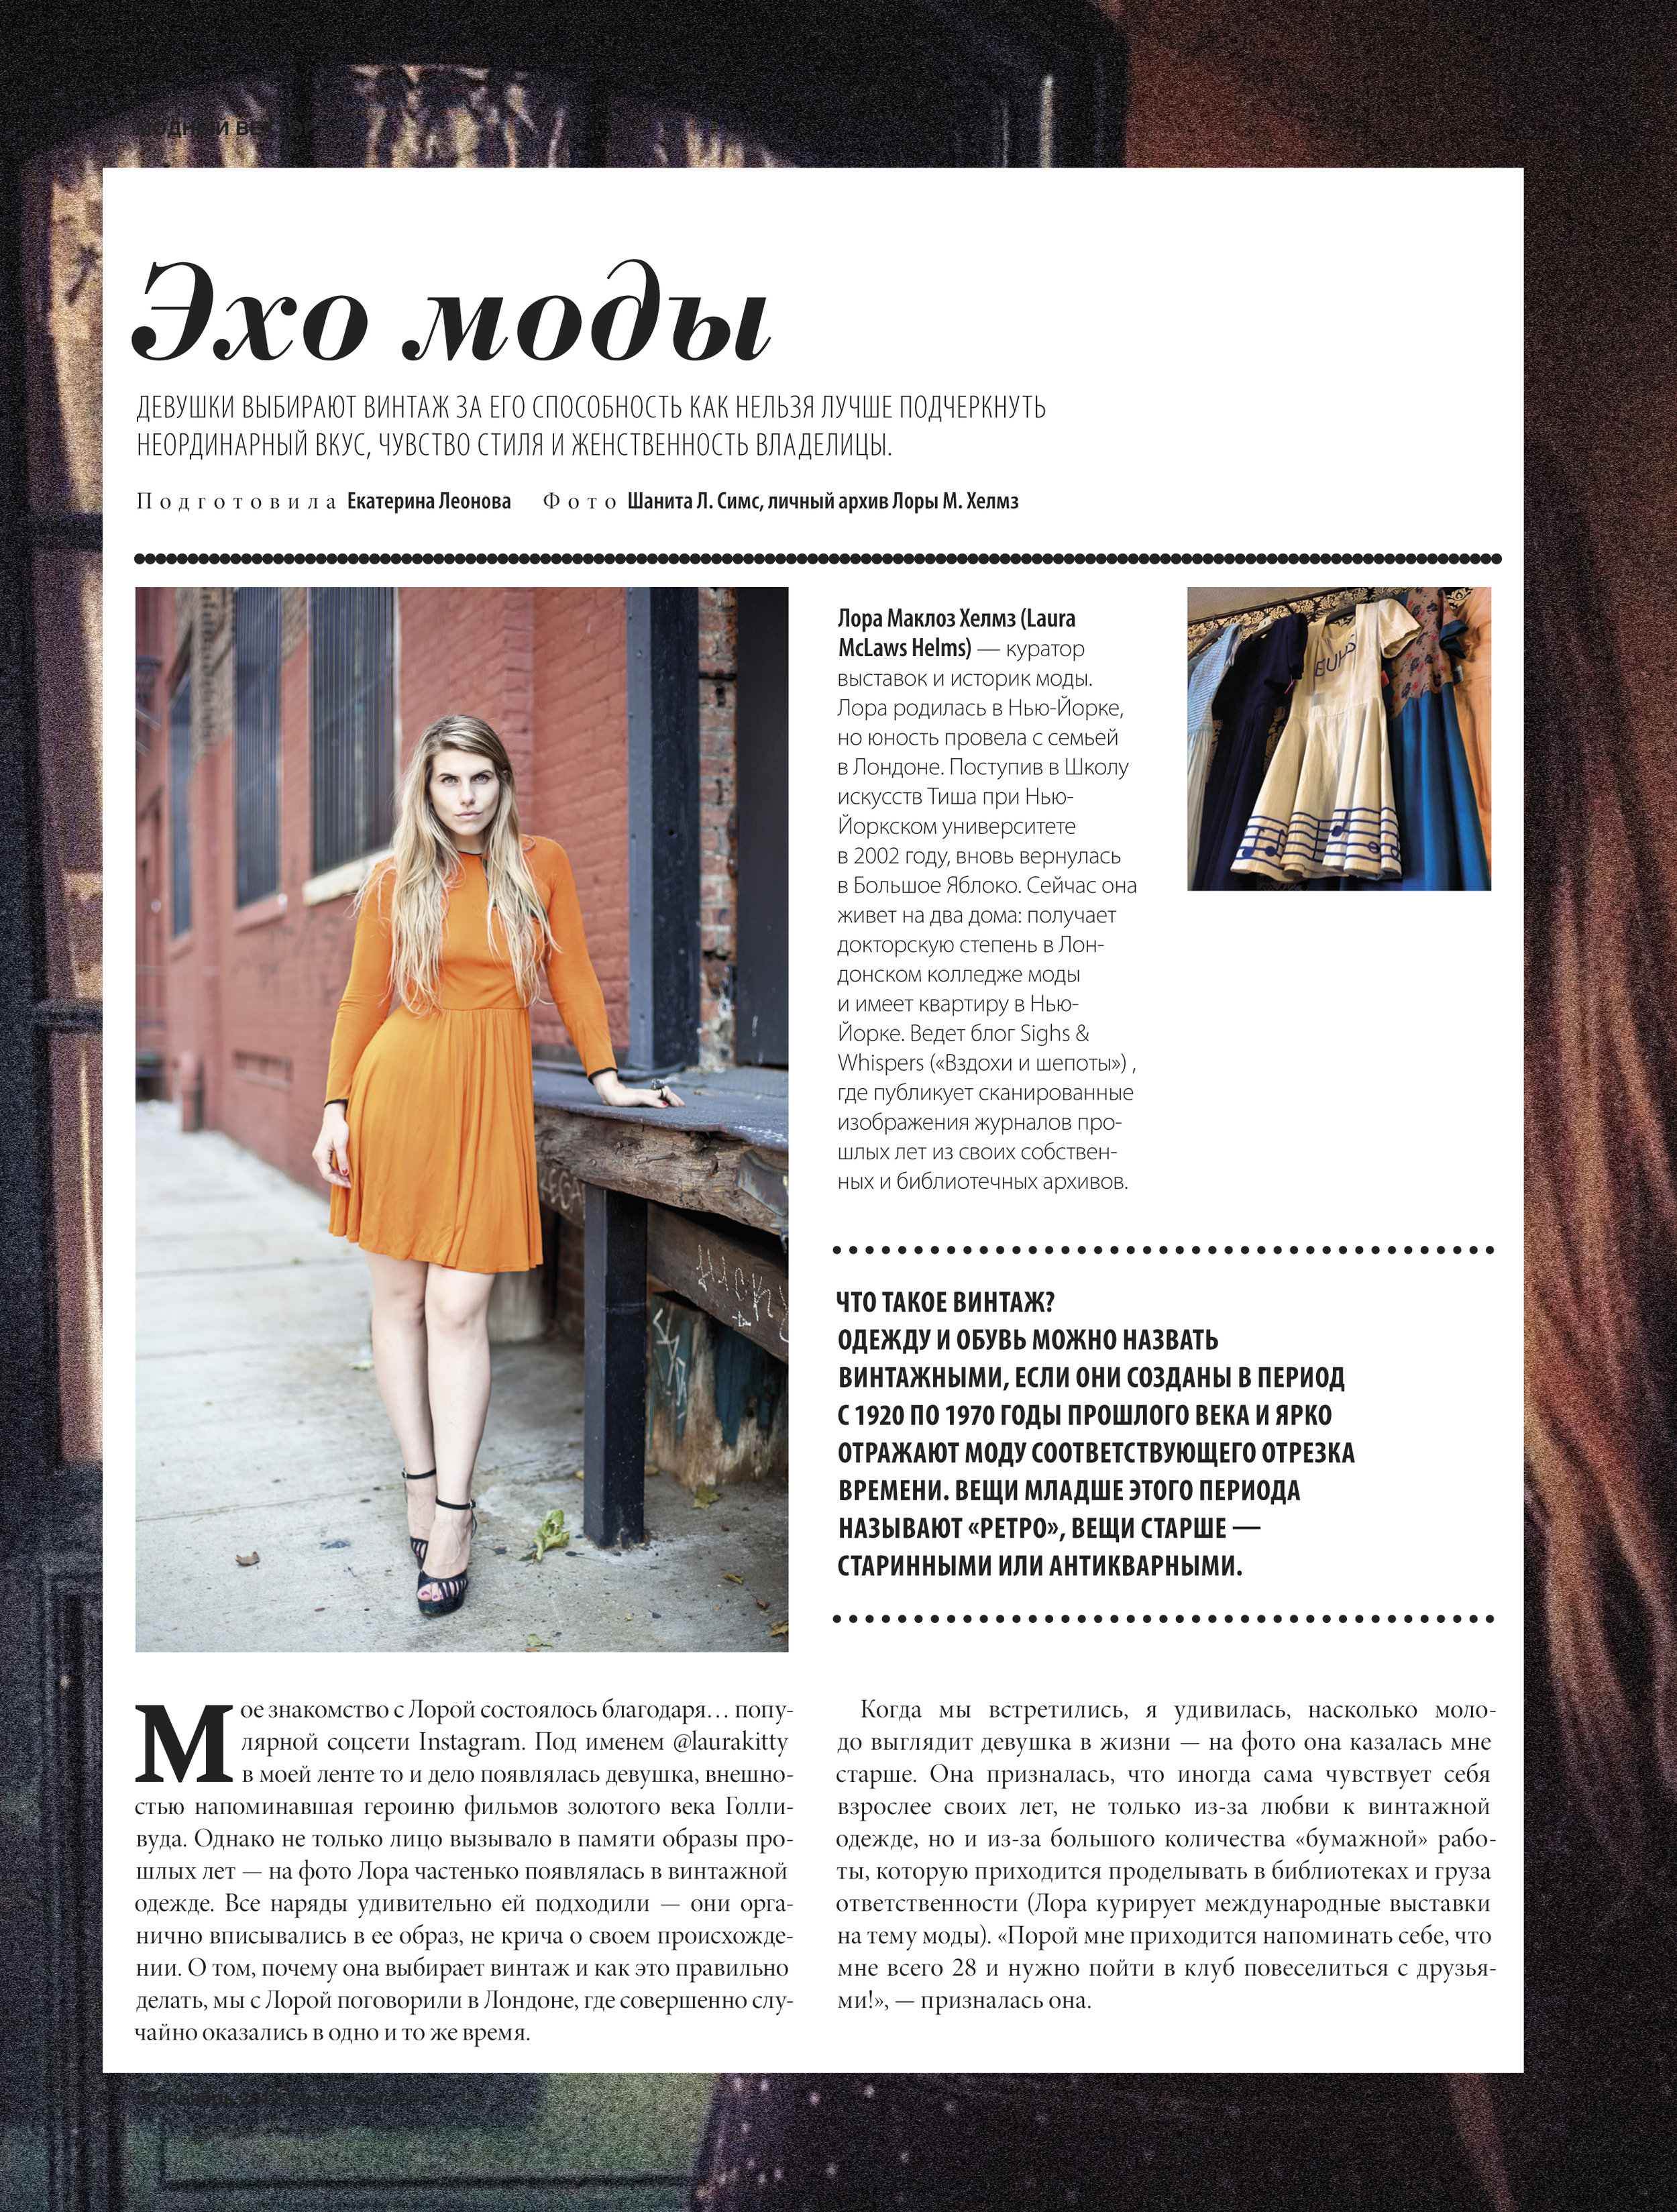 Best Magazine (Russia)_Laura McLaws Helms_1.jpg